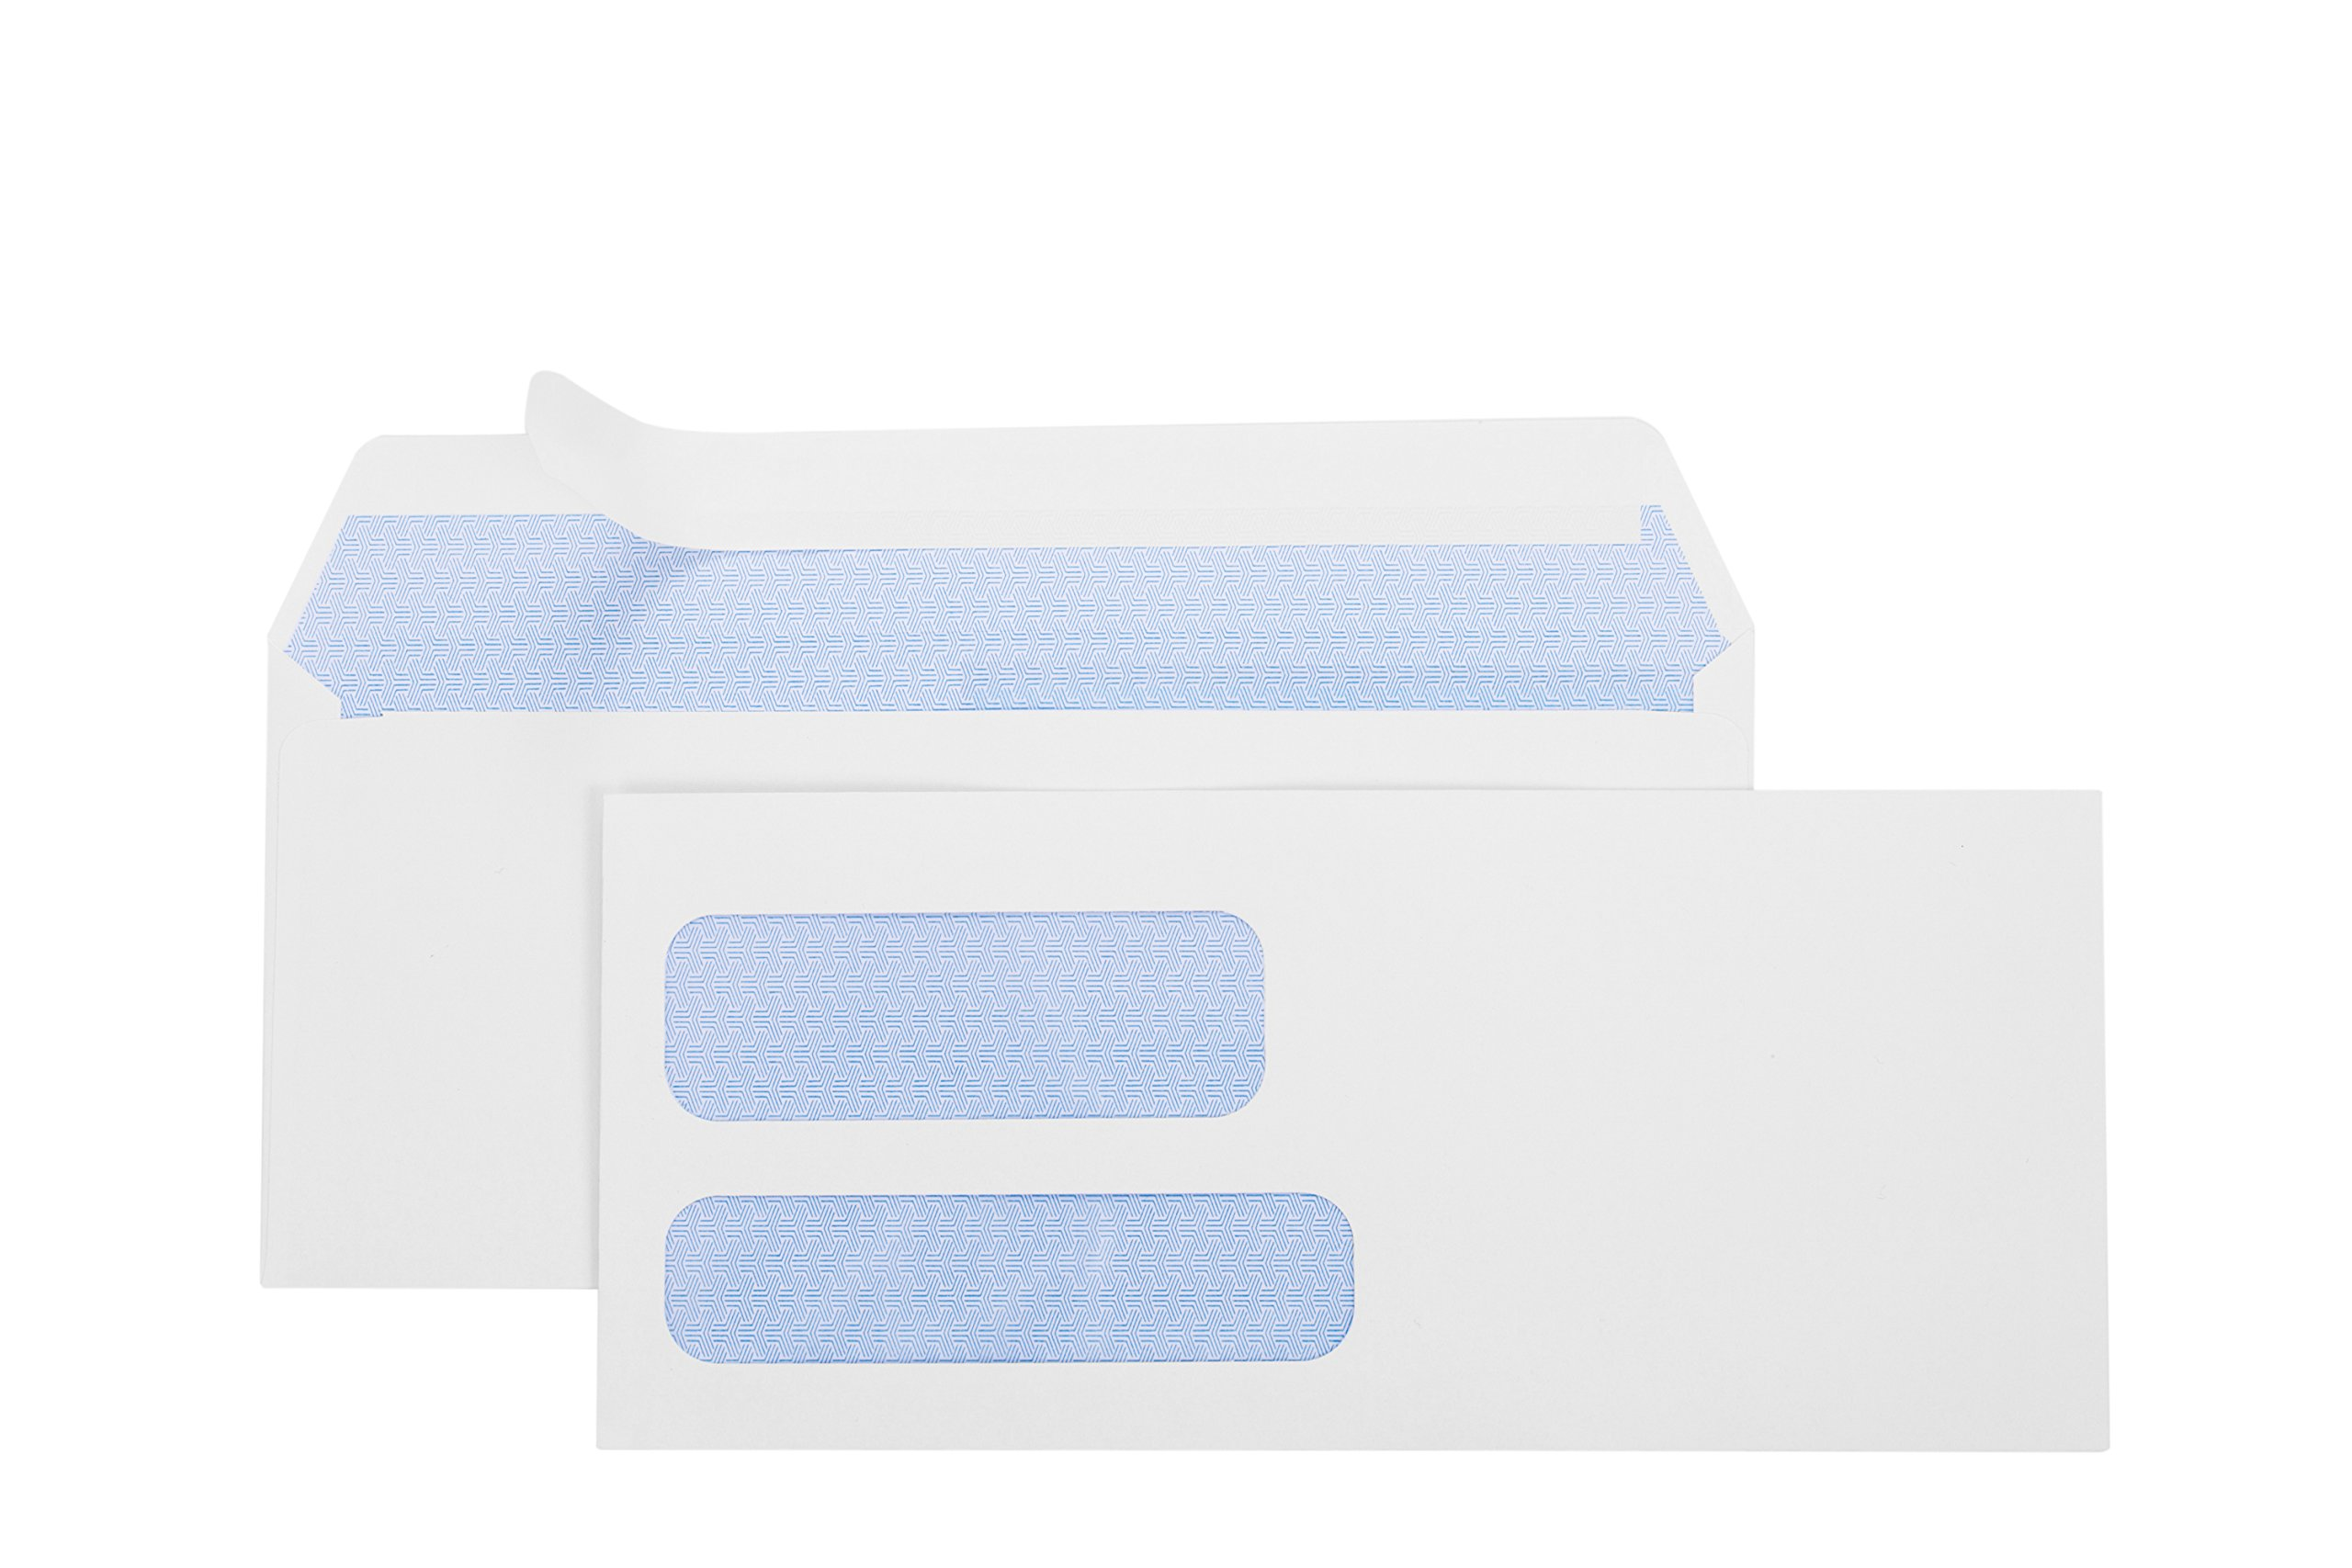 Office Deed 500#10 SELF SEAL Double Window Security Envelopes-Designed for Business Statements, QuickBooks - 4 1/8 X 9 ½'' by Office Deed (Image #1)